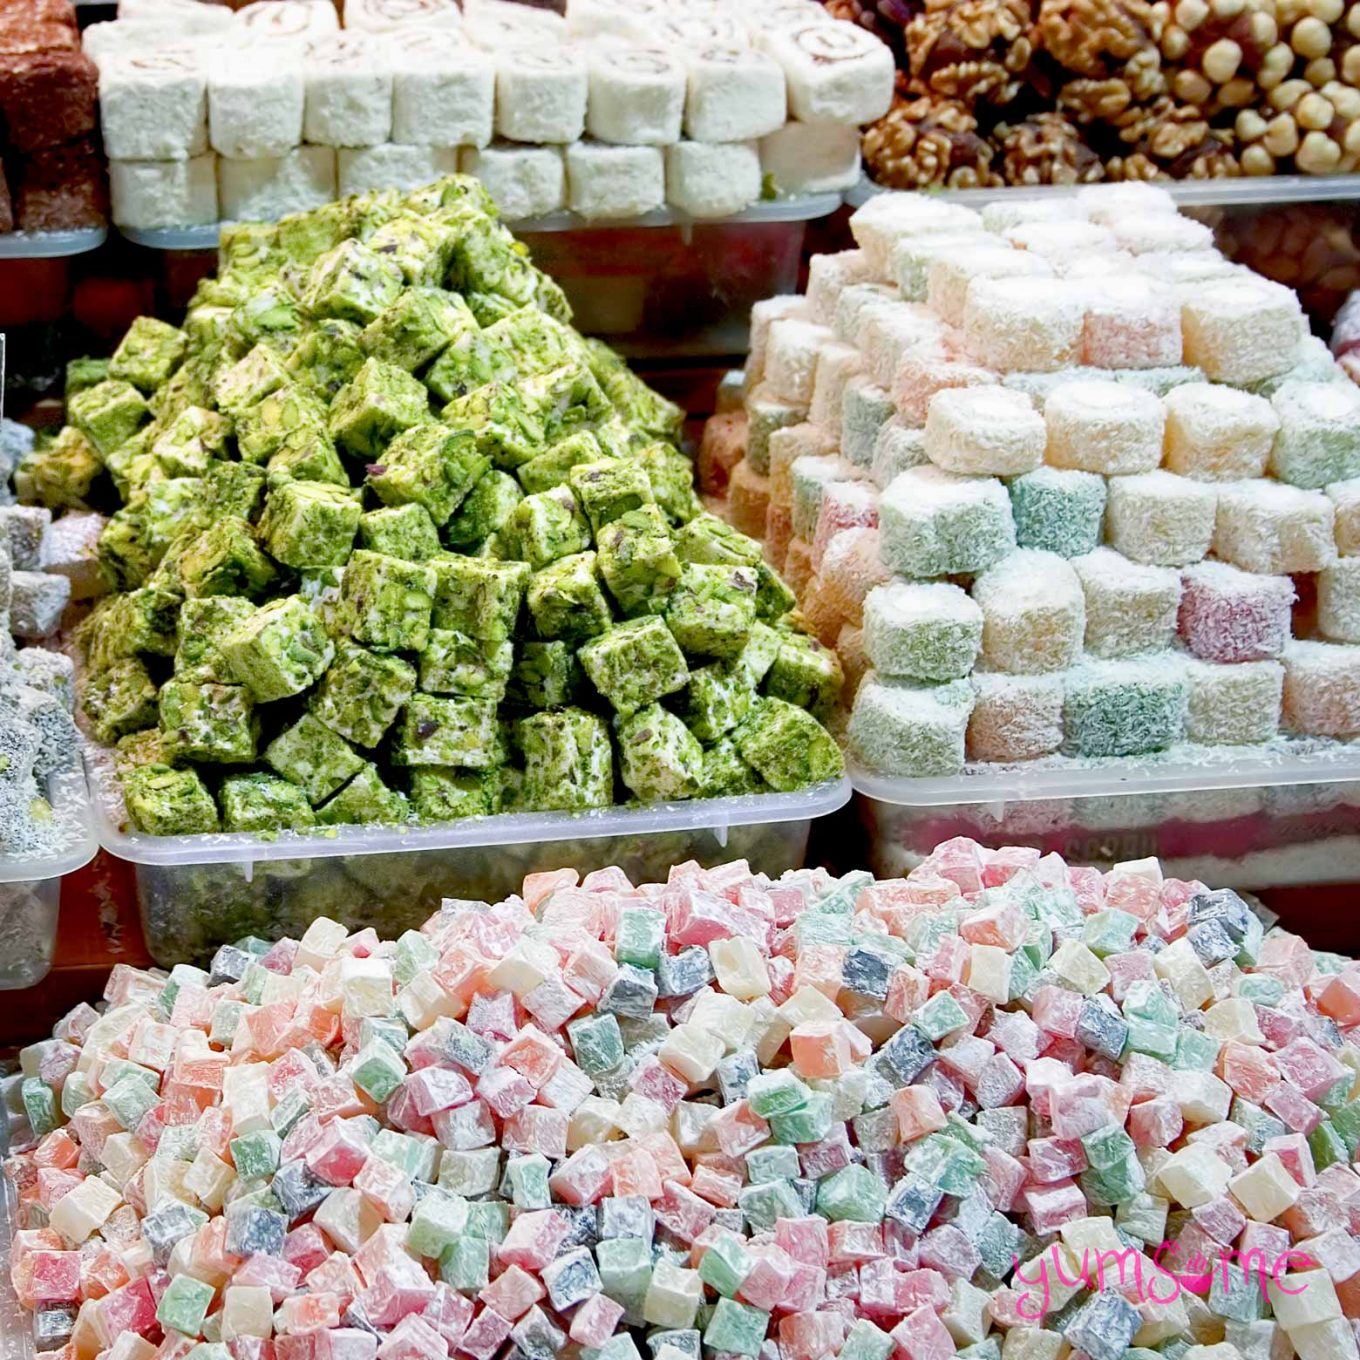 Piles of various flavoured lokum at a market in Turkey.